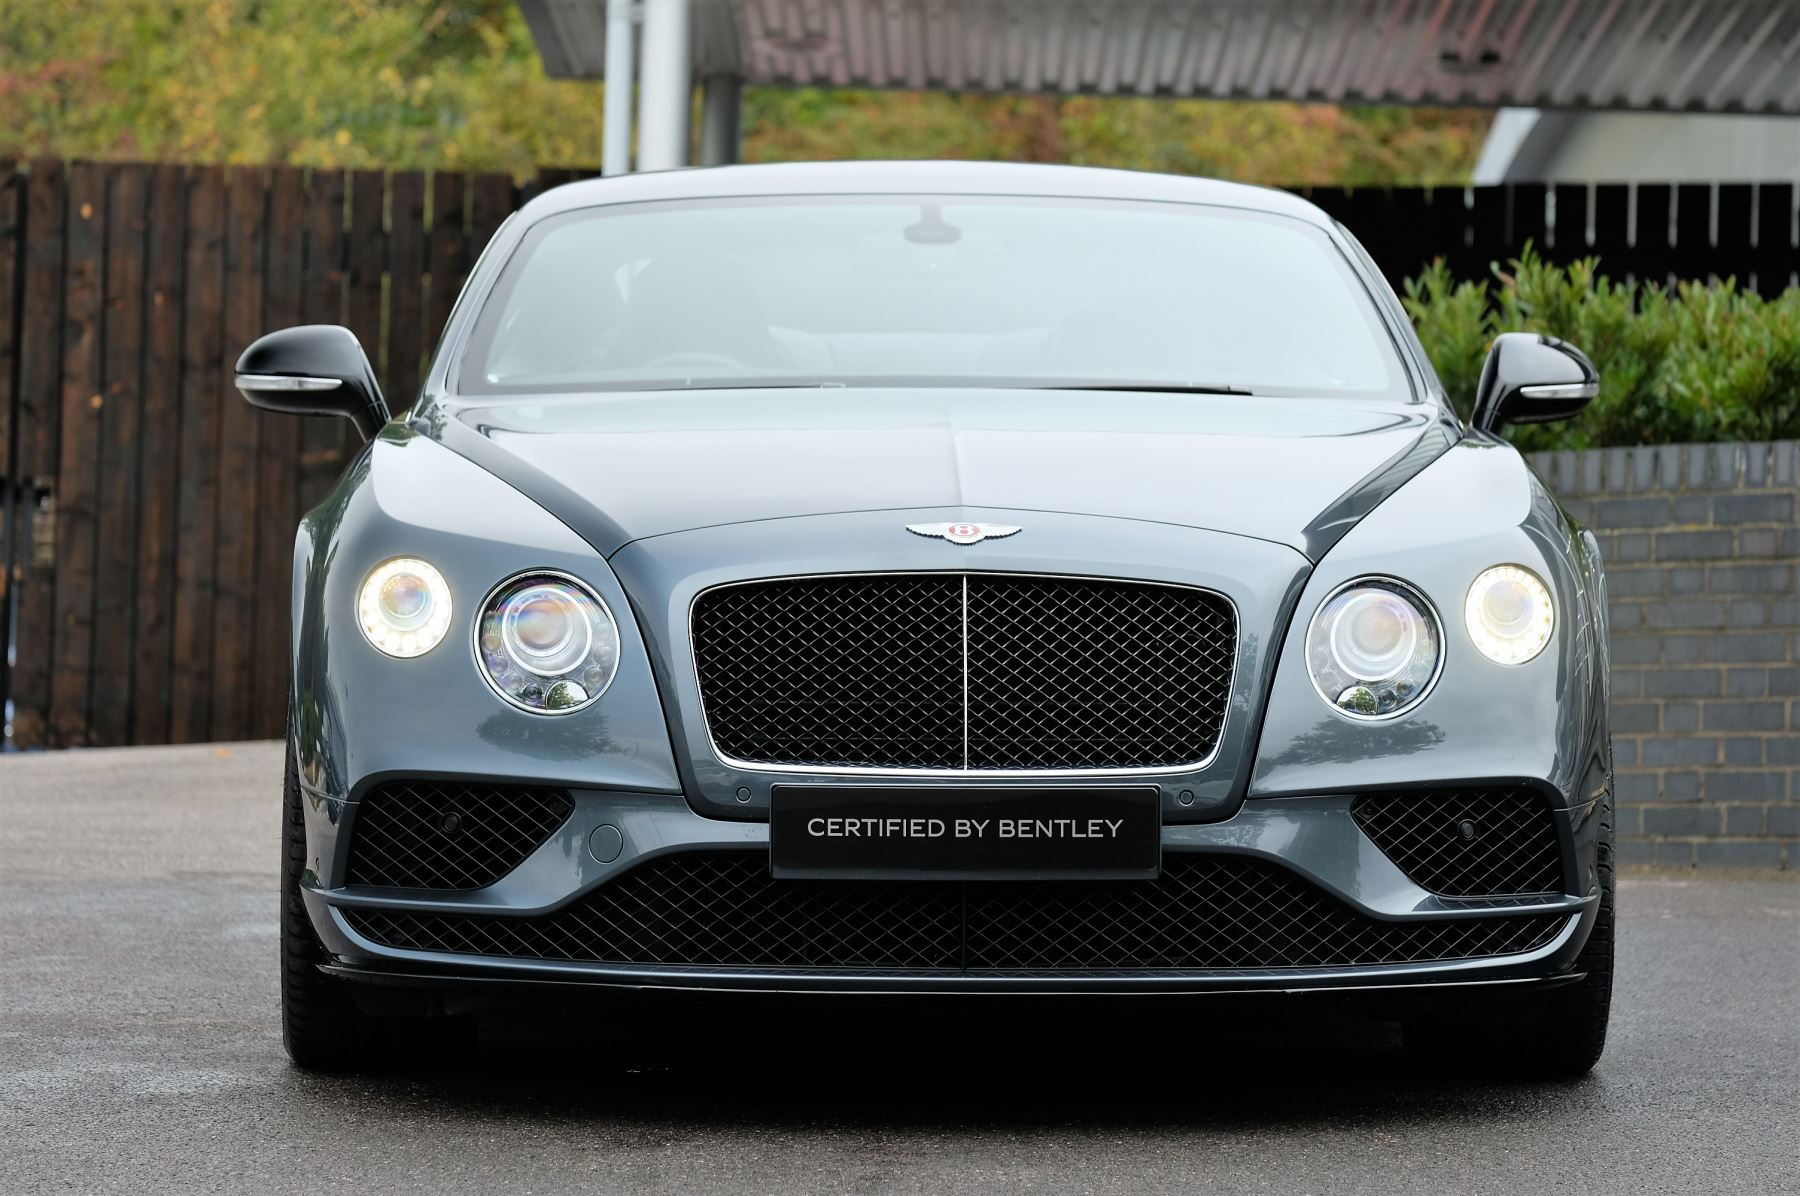 Bentley Continental GT 4.0 V8 S Mulliner Driving Spec 2dr image 2